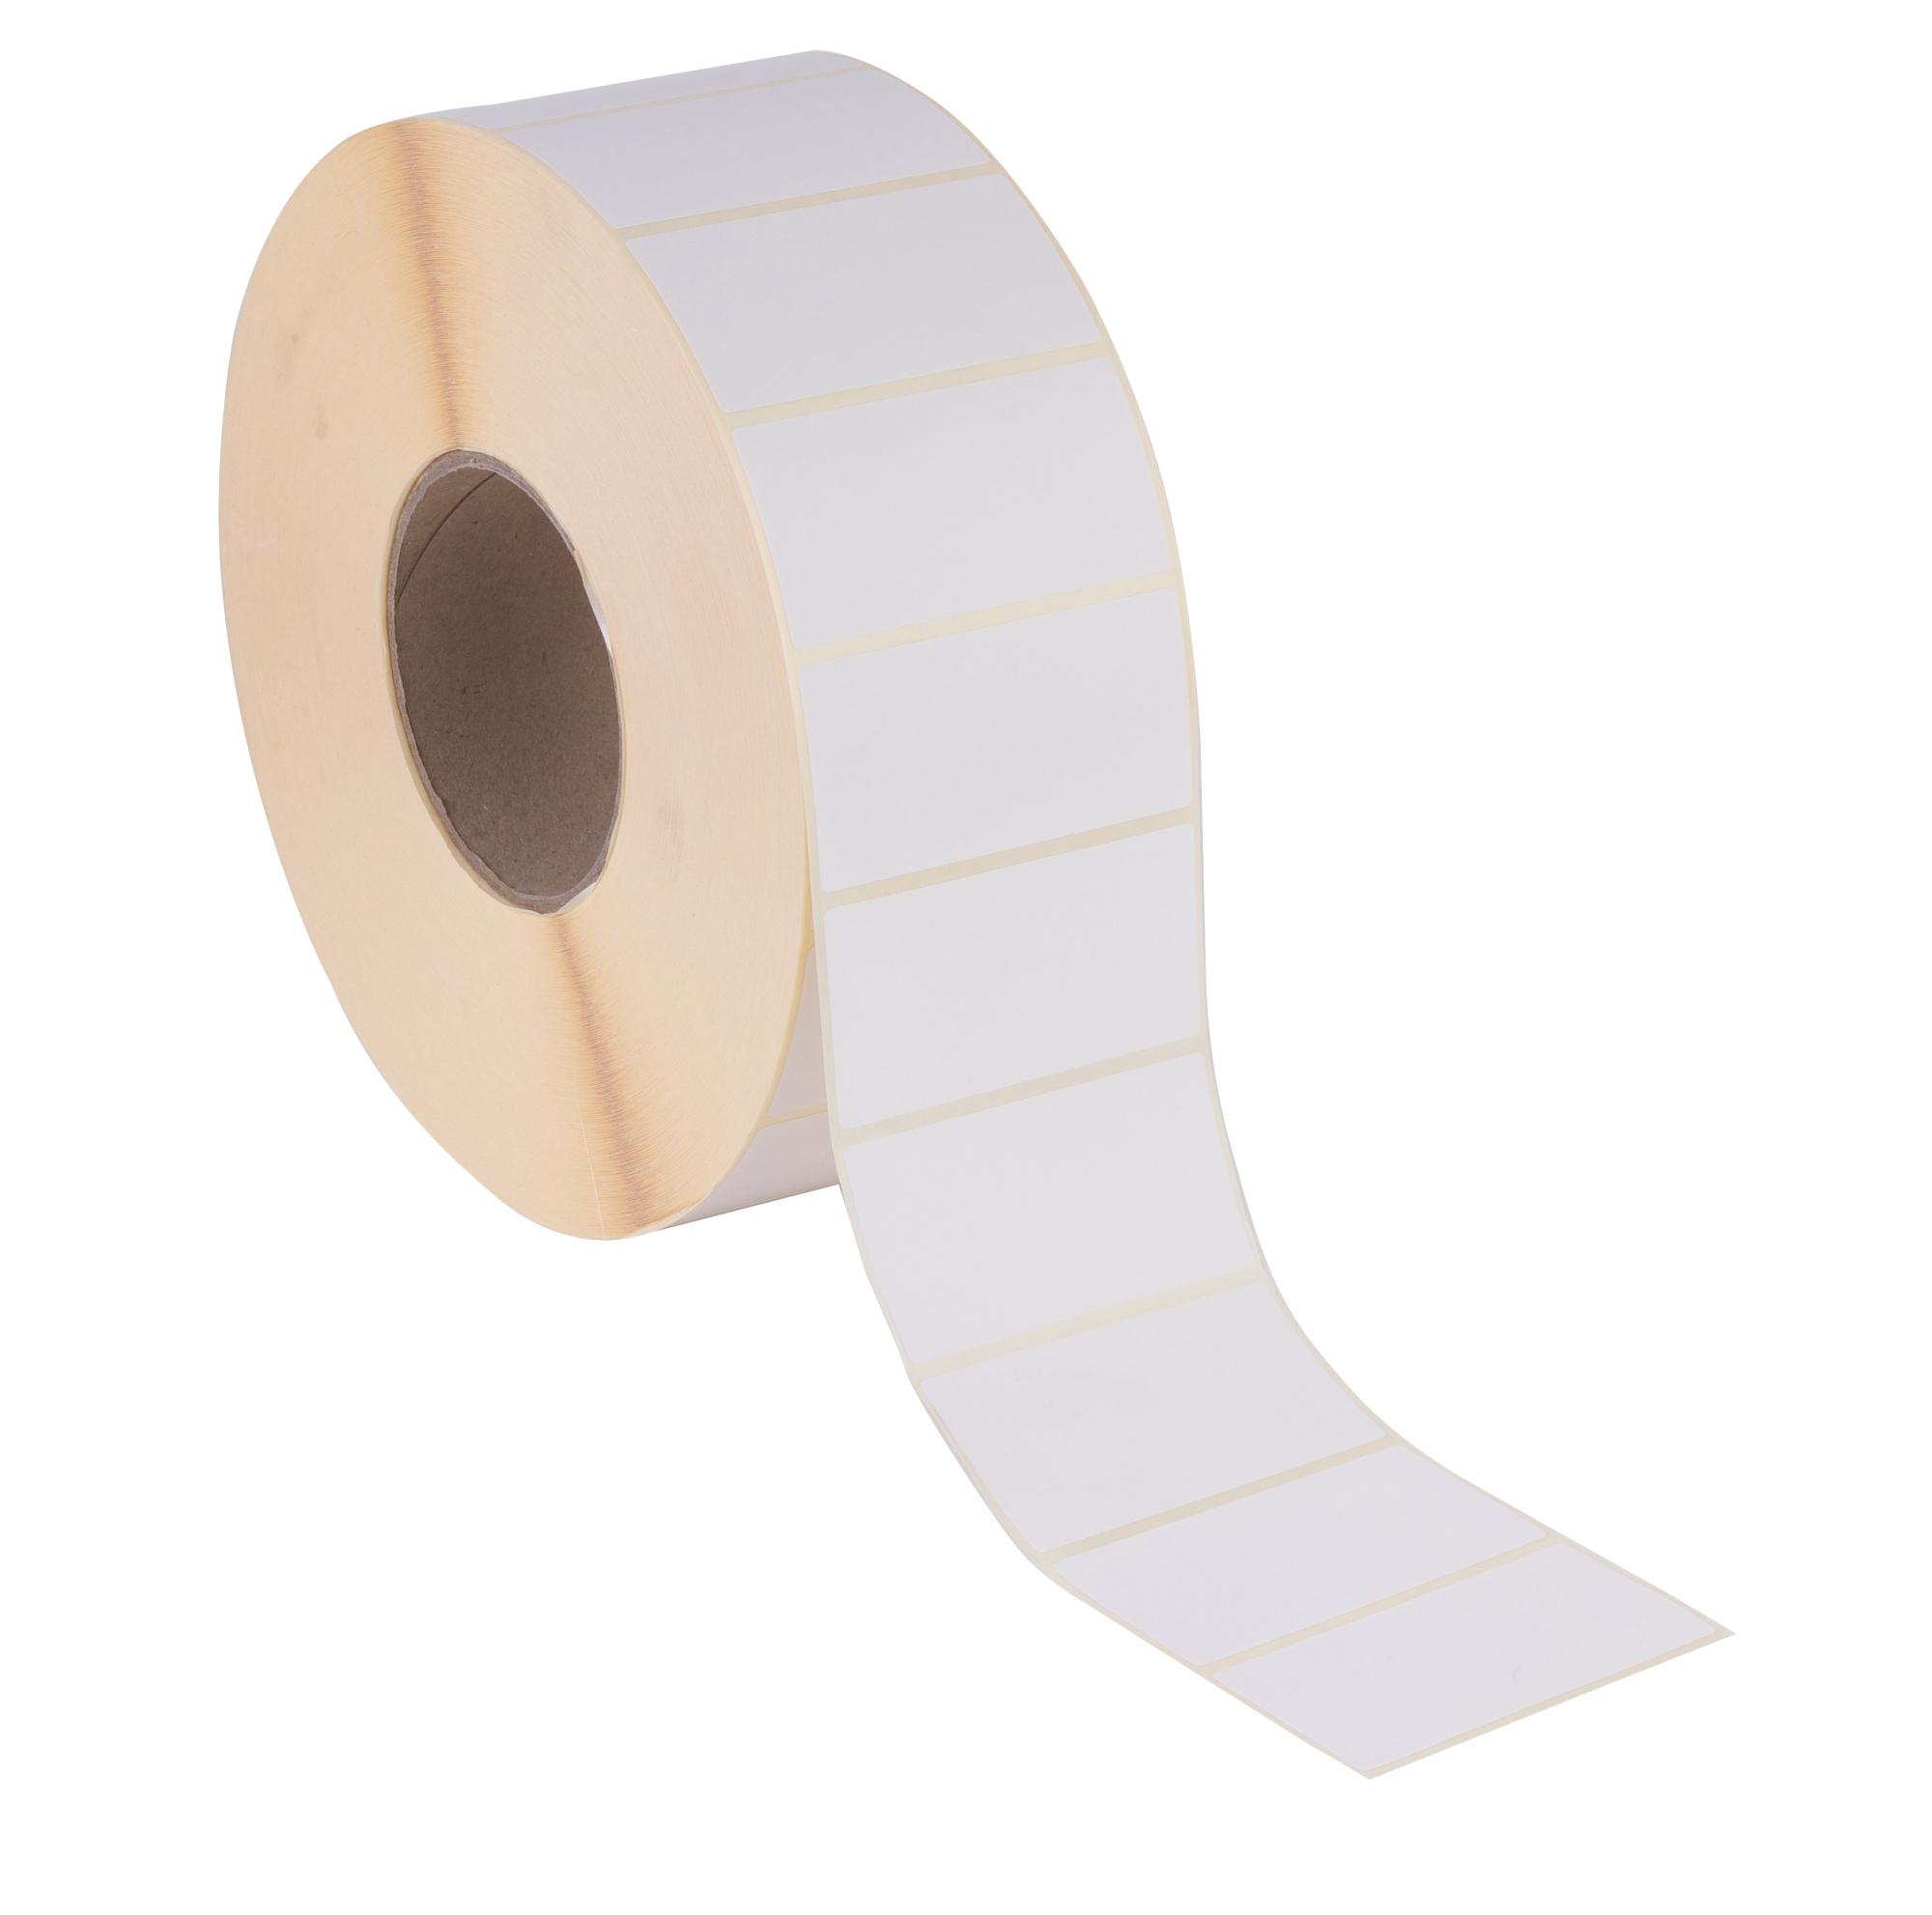 52 X 52 Plain White Thermal Direct Printer Labels